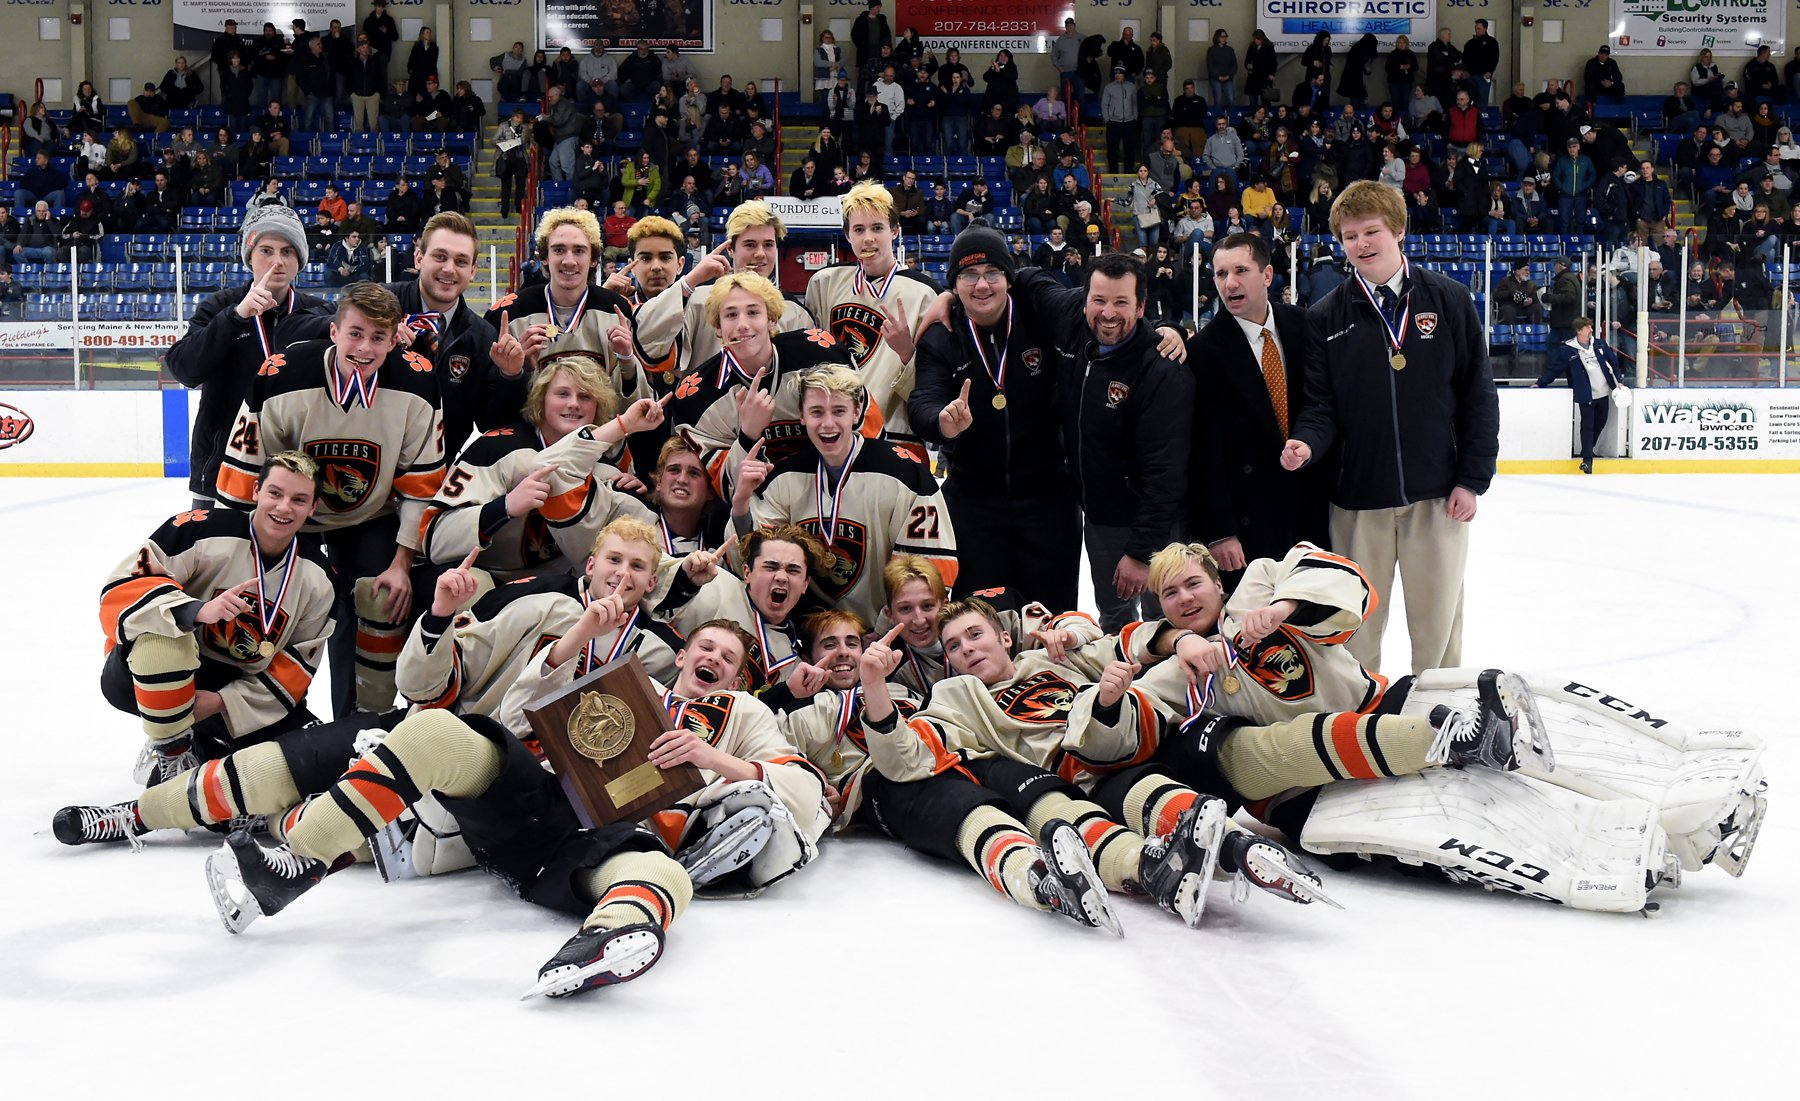 Tigers Punch Ticket To State Final Journal Tribune